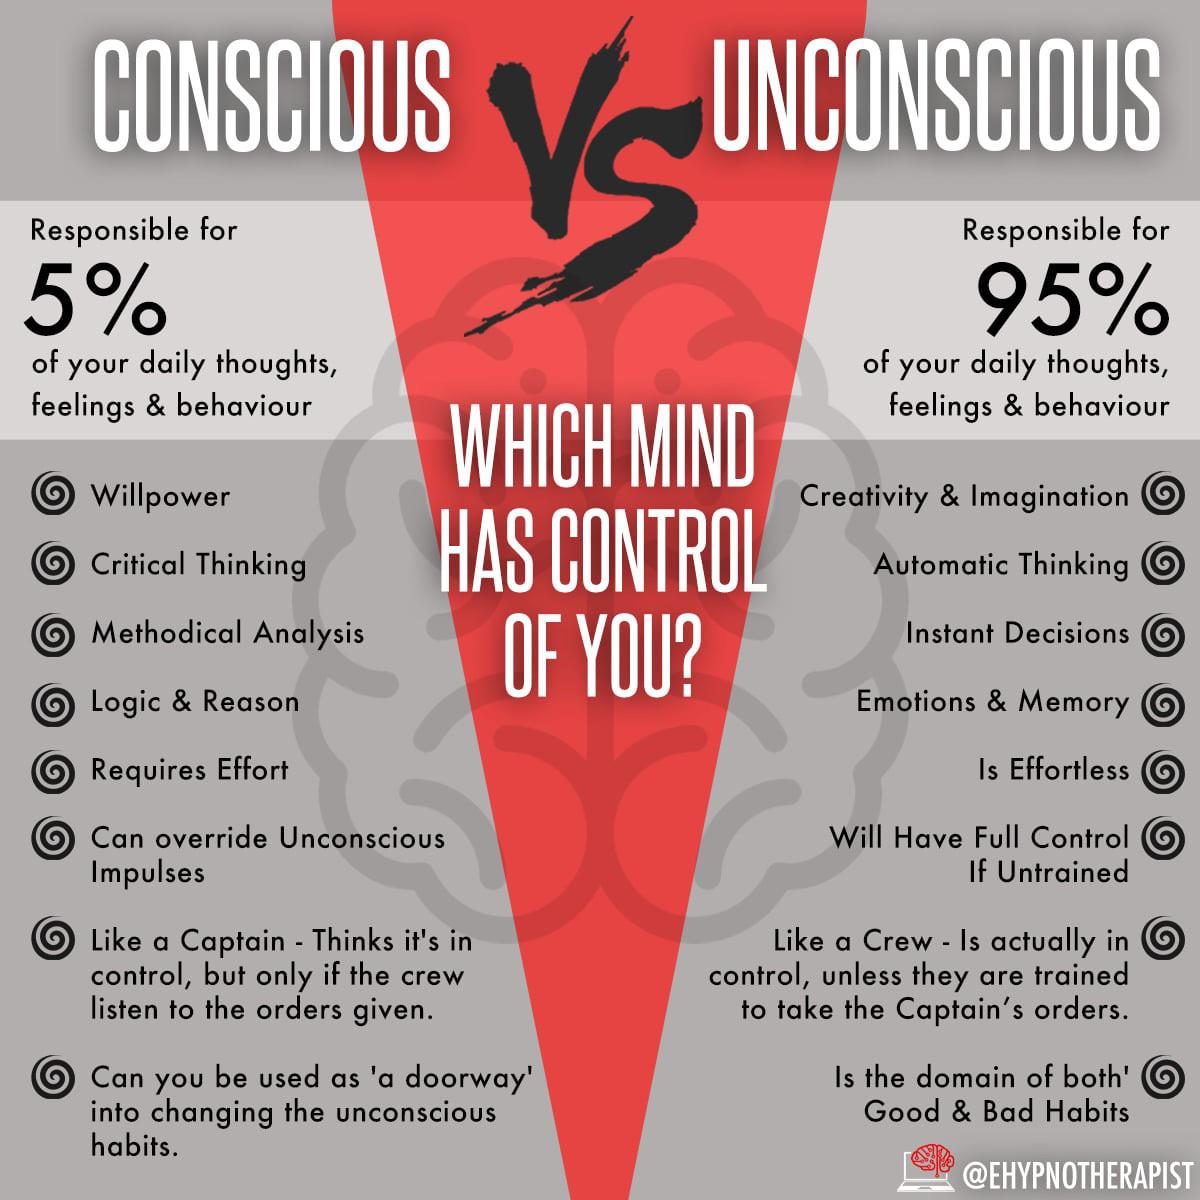 [Image] Which 'Mind' Has Control Of You?